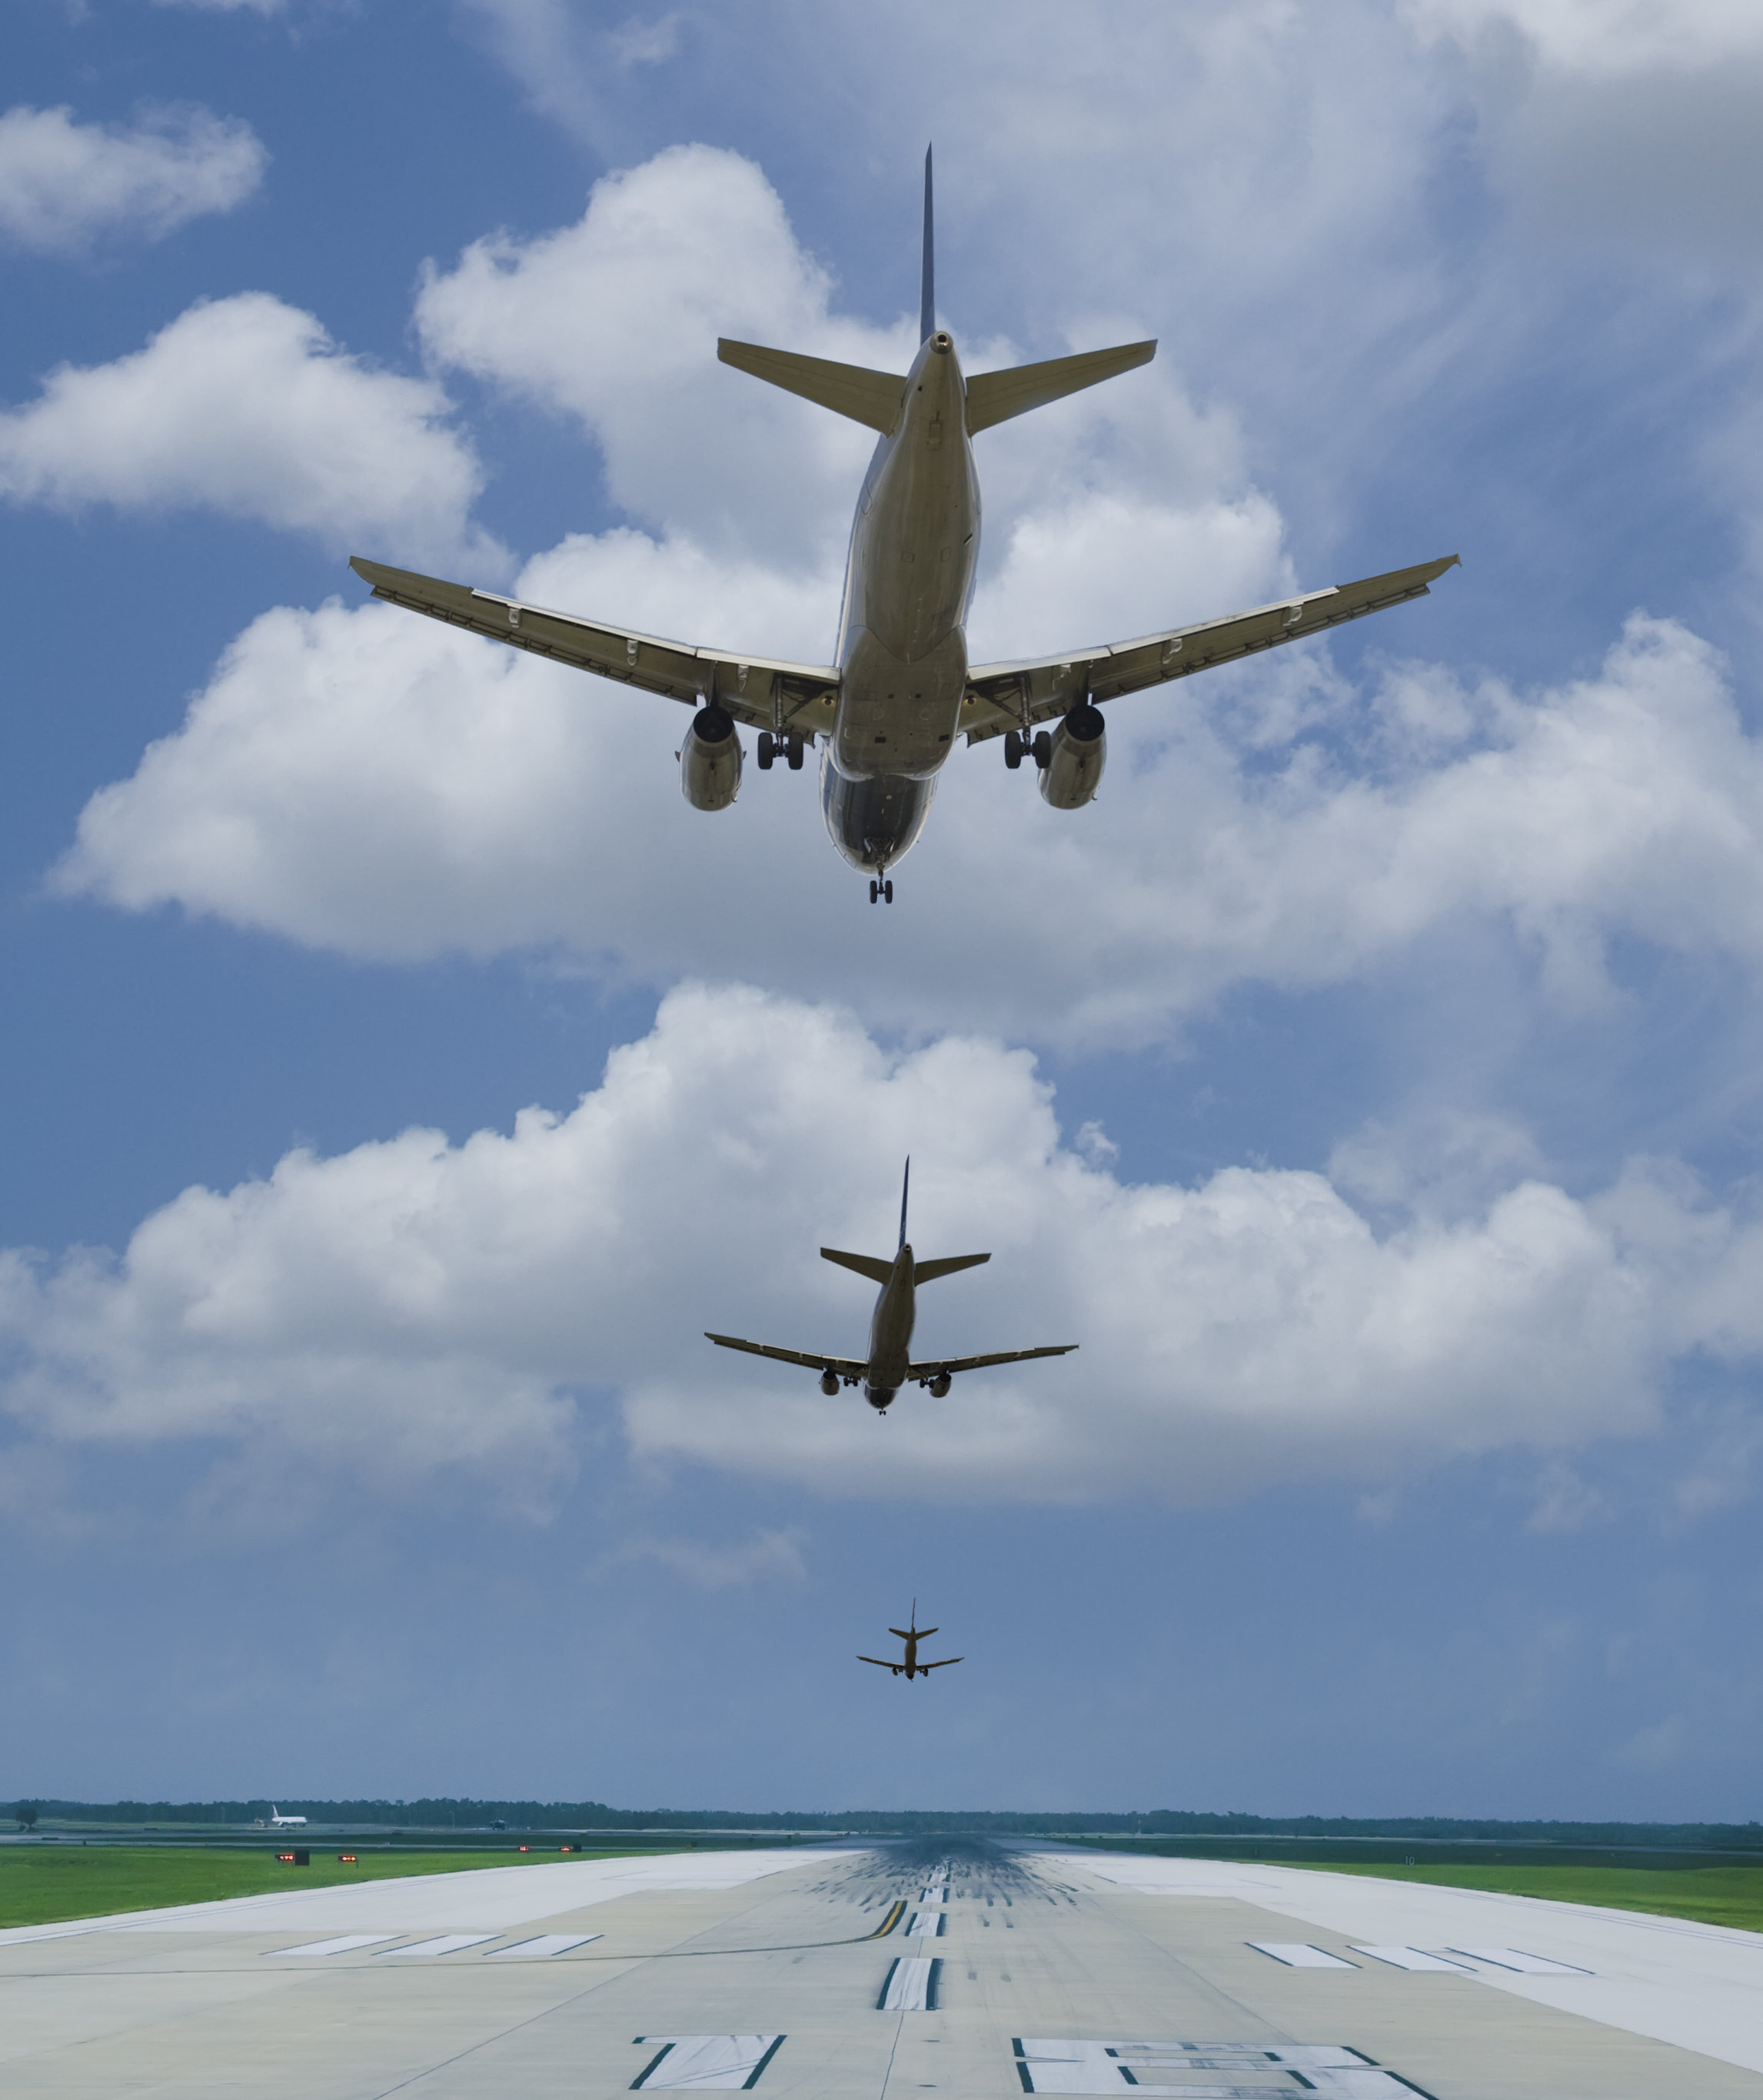 planes-on-runway